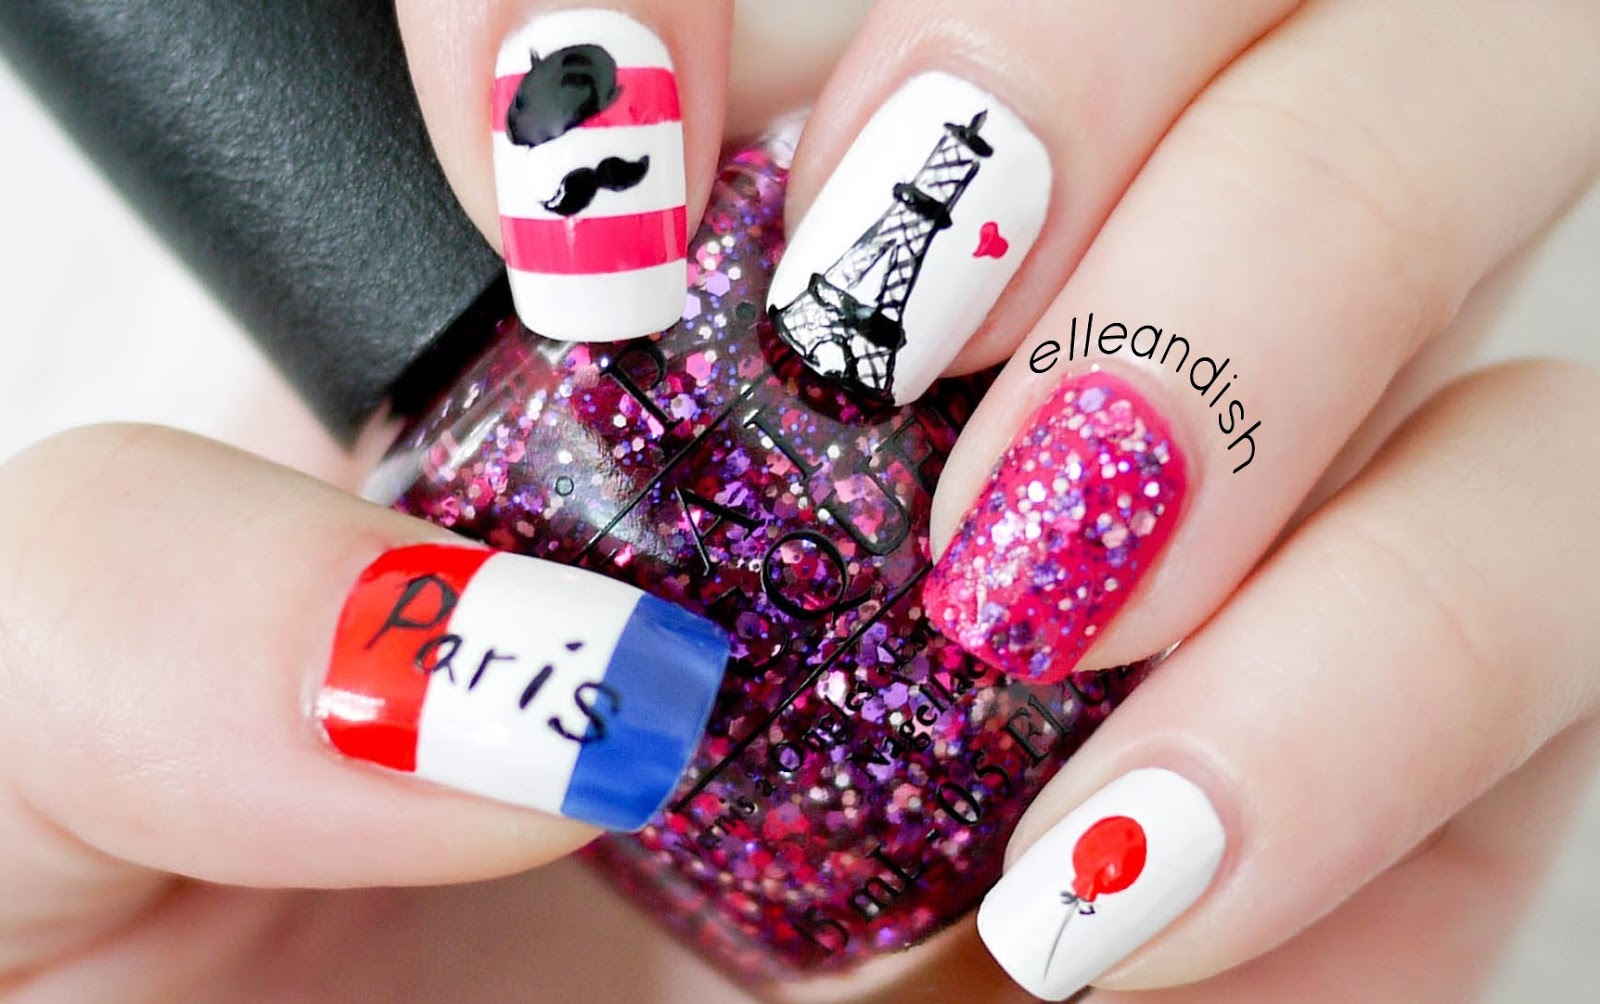 Paris inspired nail art ideas fall in love disneyland paris nail art prinsesfo Gallery